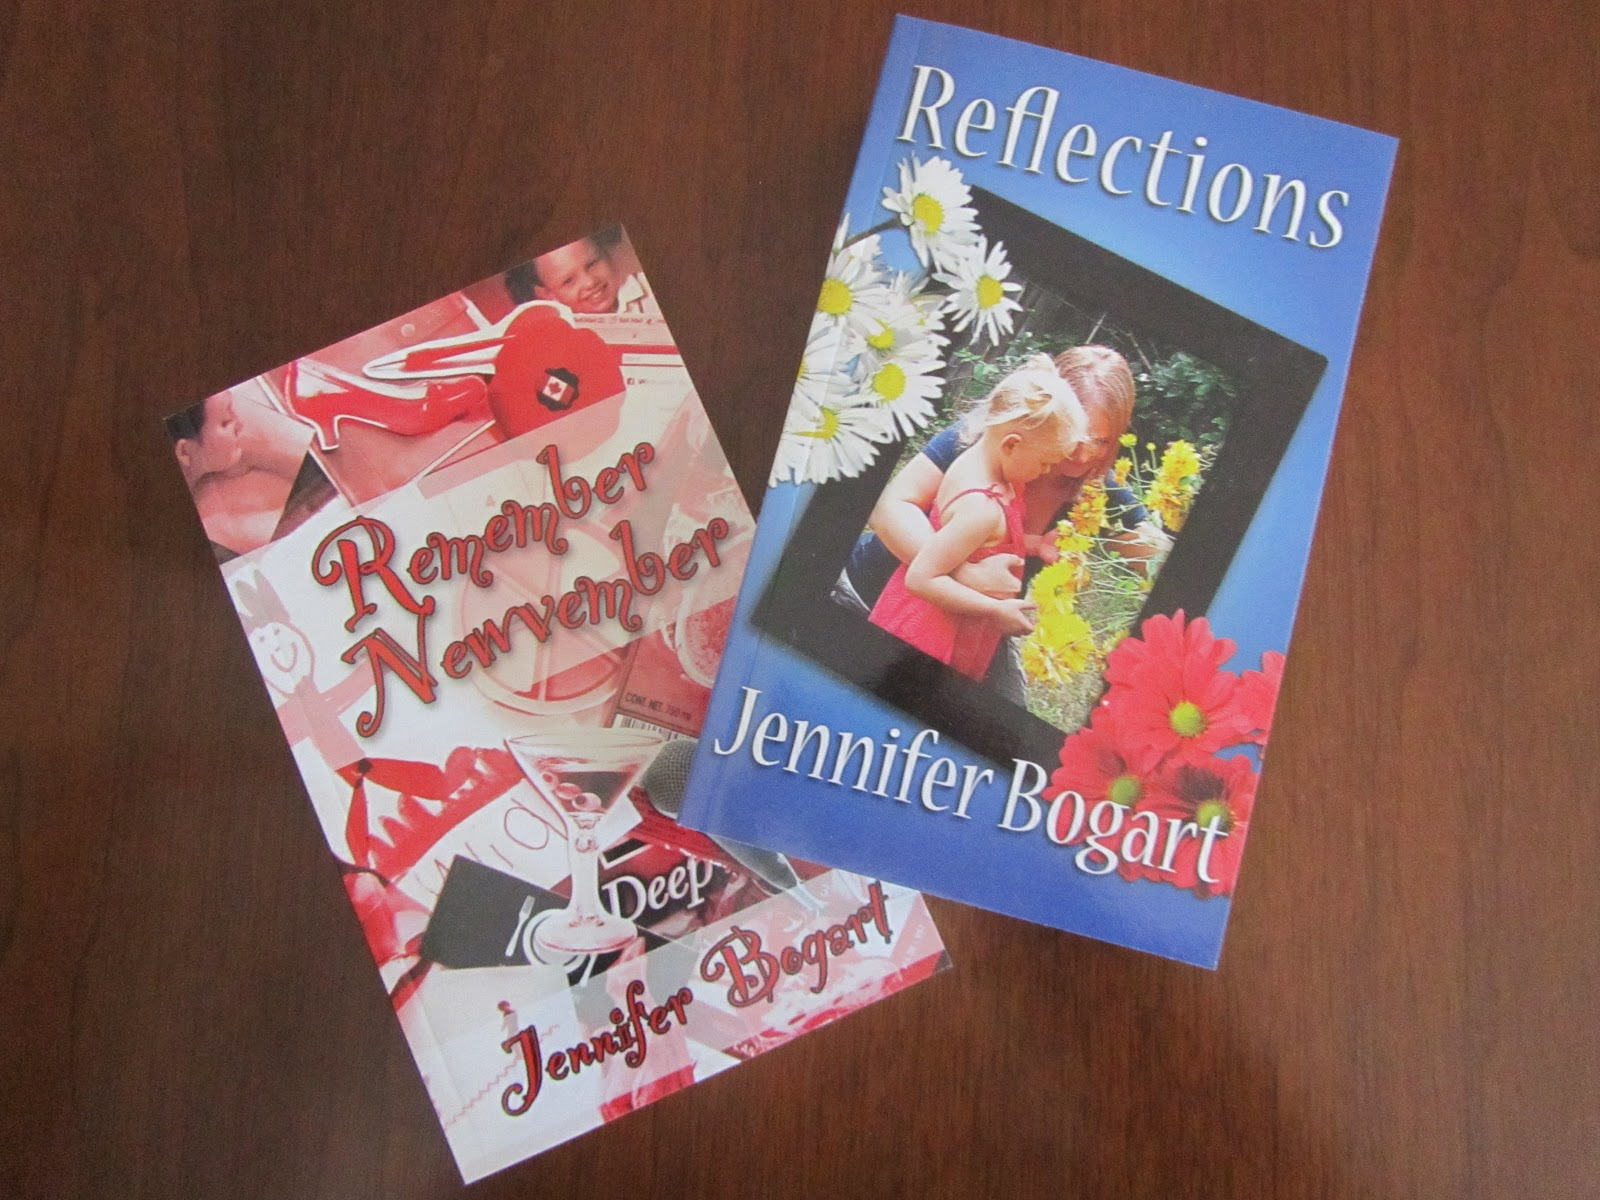 Jennifer Bogart - Remember Newvember & Reflections